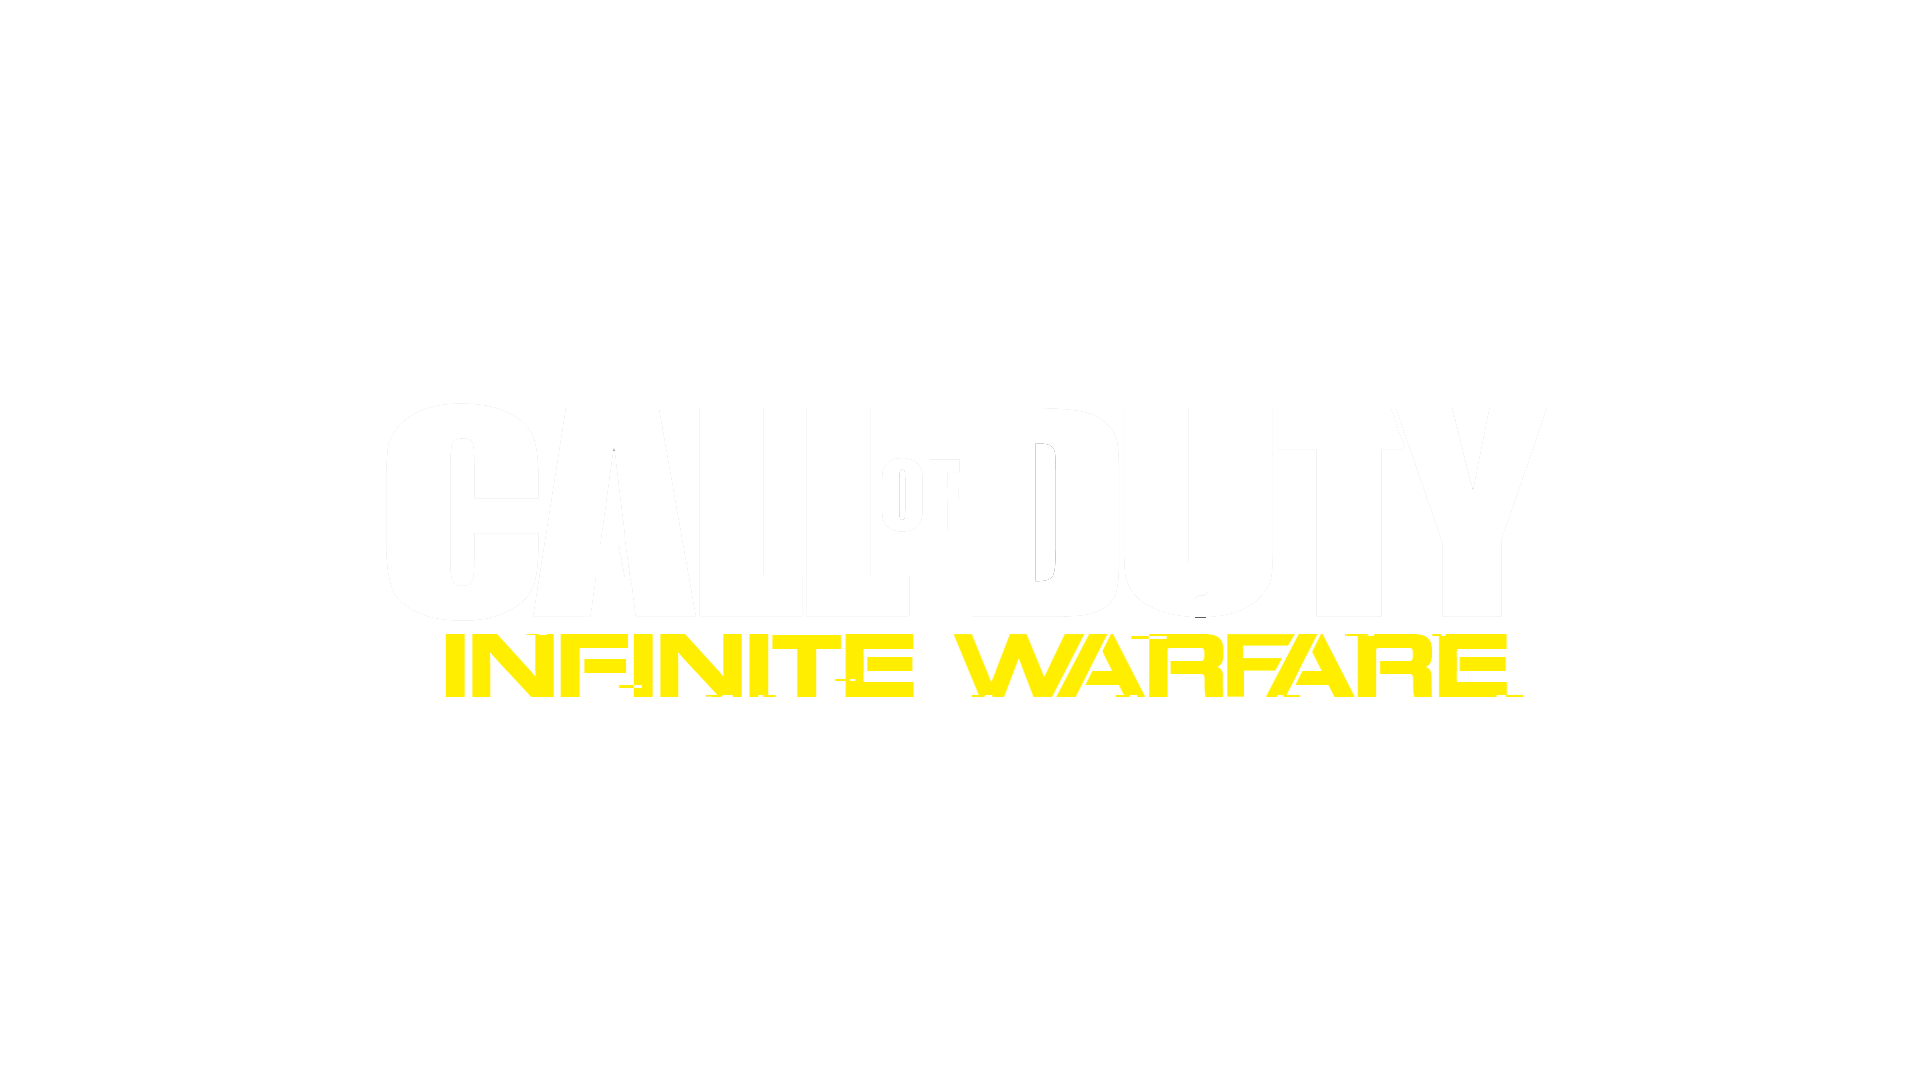 Infinite Warfare Logo Transparent - Call of Duty : Infinite Warfare Transparent Logo by MuuseDesign on ...